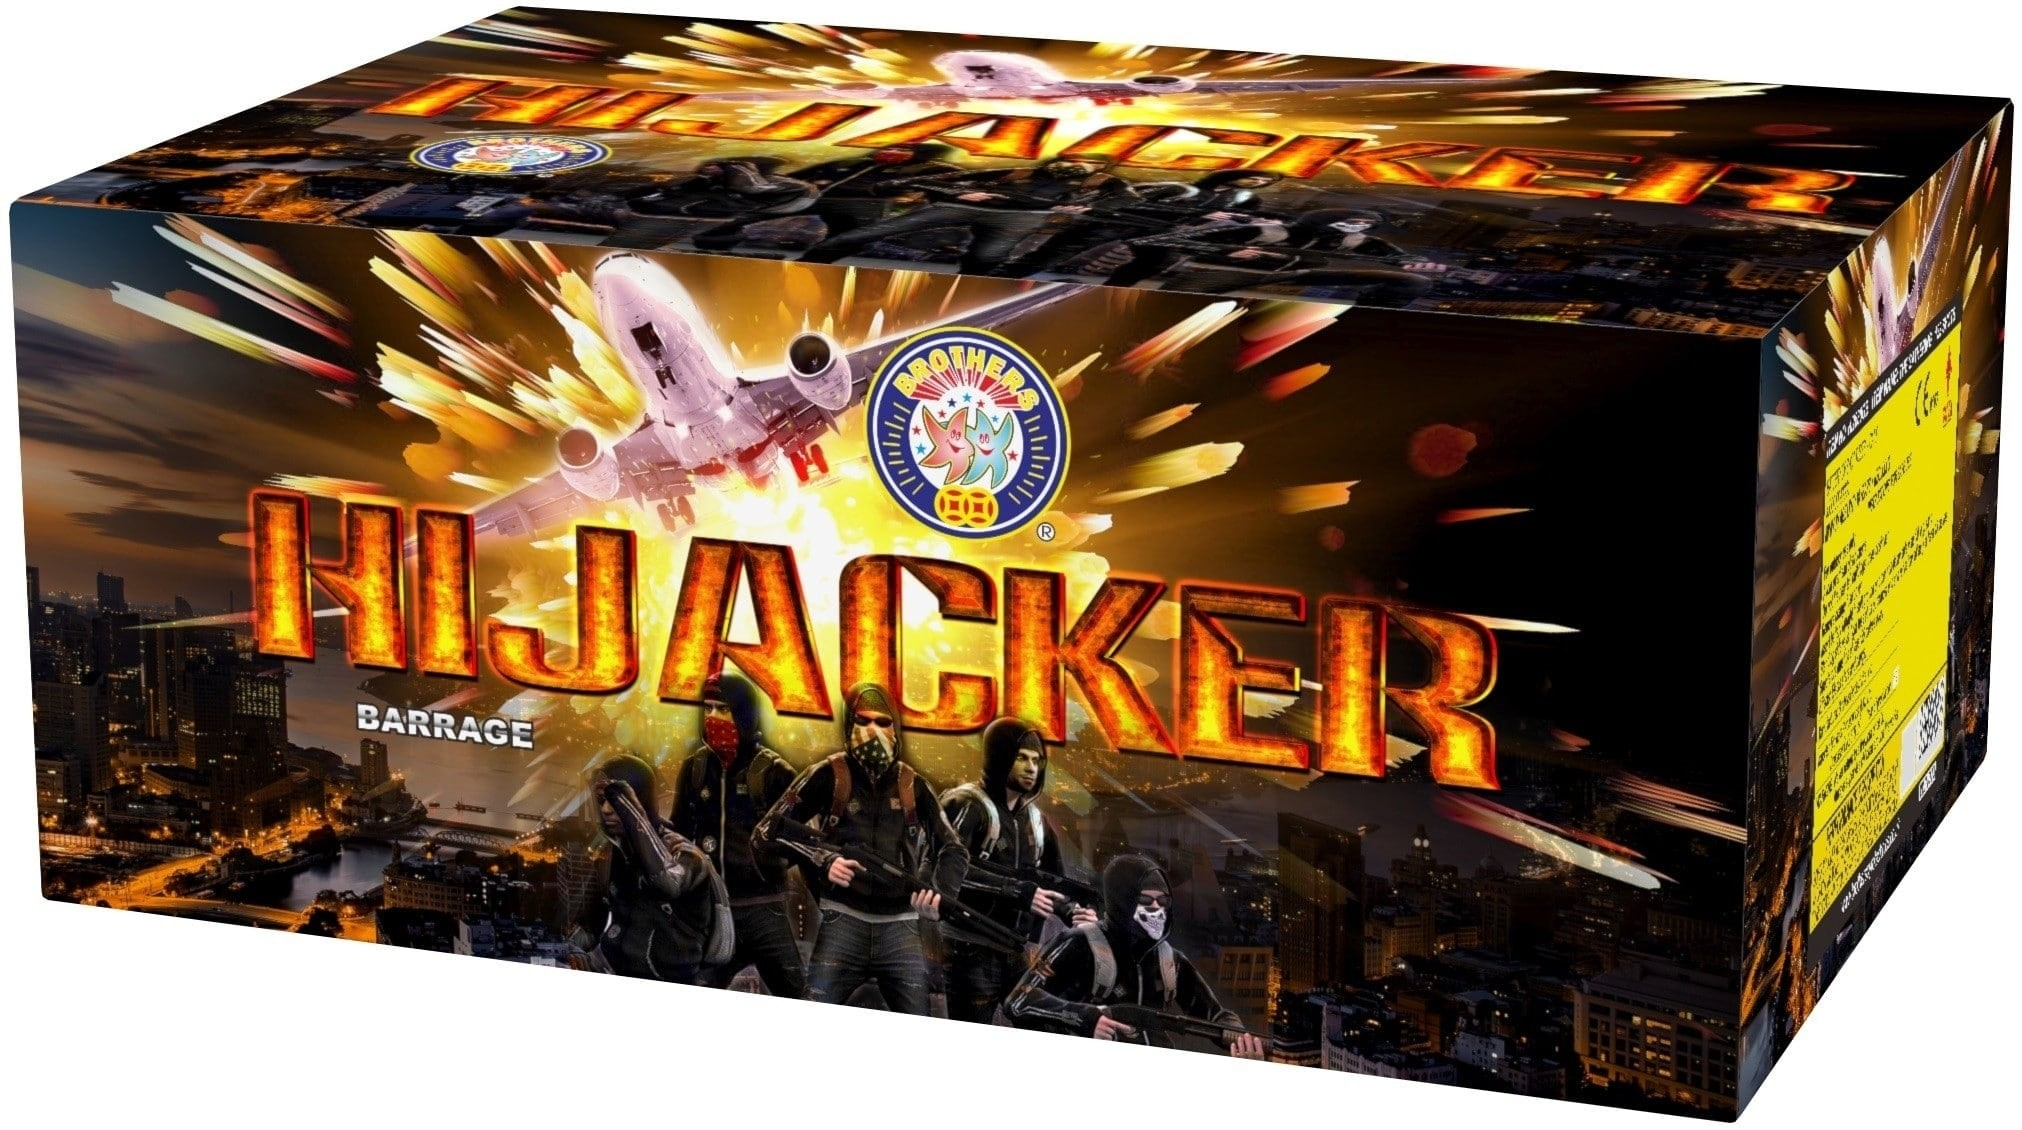 Hijacker By Brothers Pyrotechnics